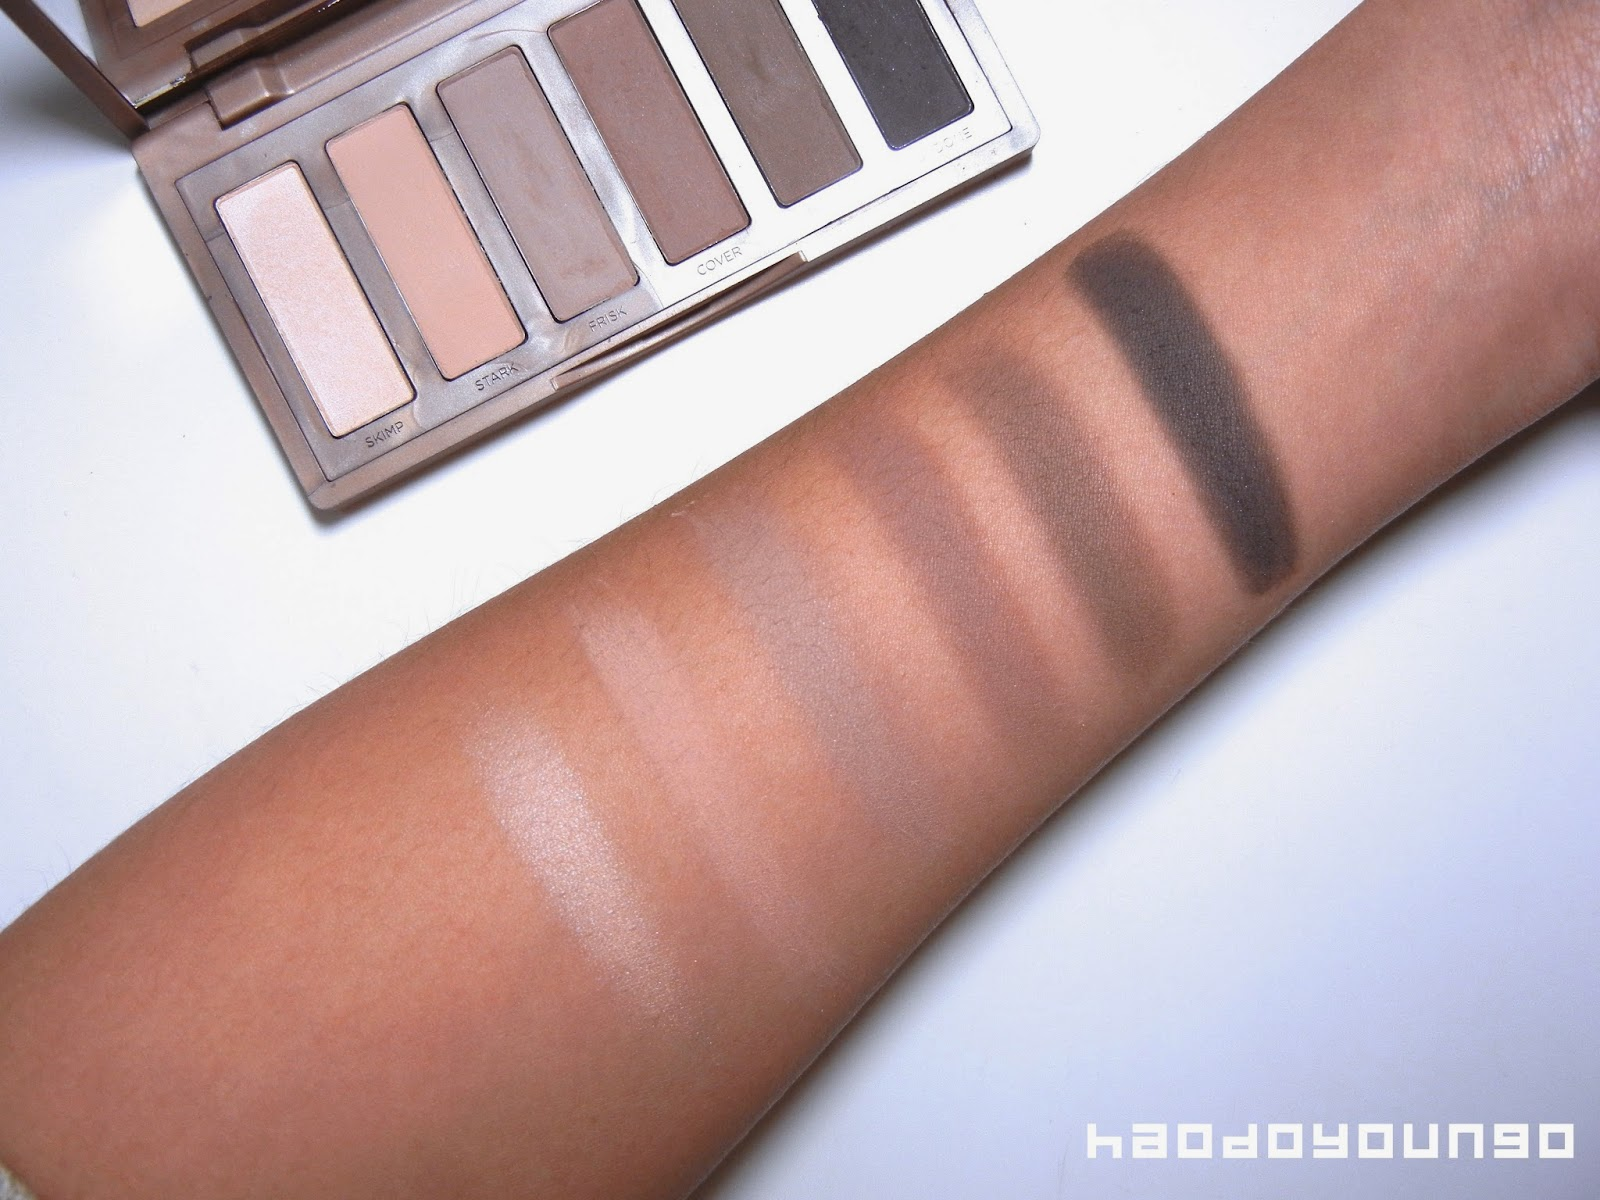 Naked2 Eyeshadow Palette by Urban Decay #6